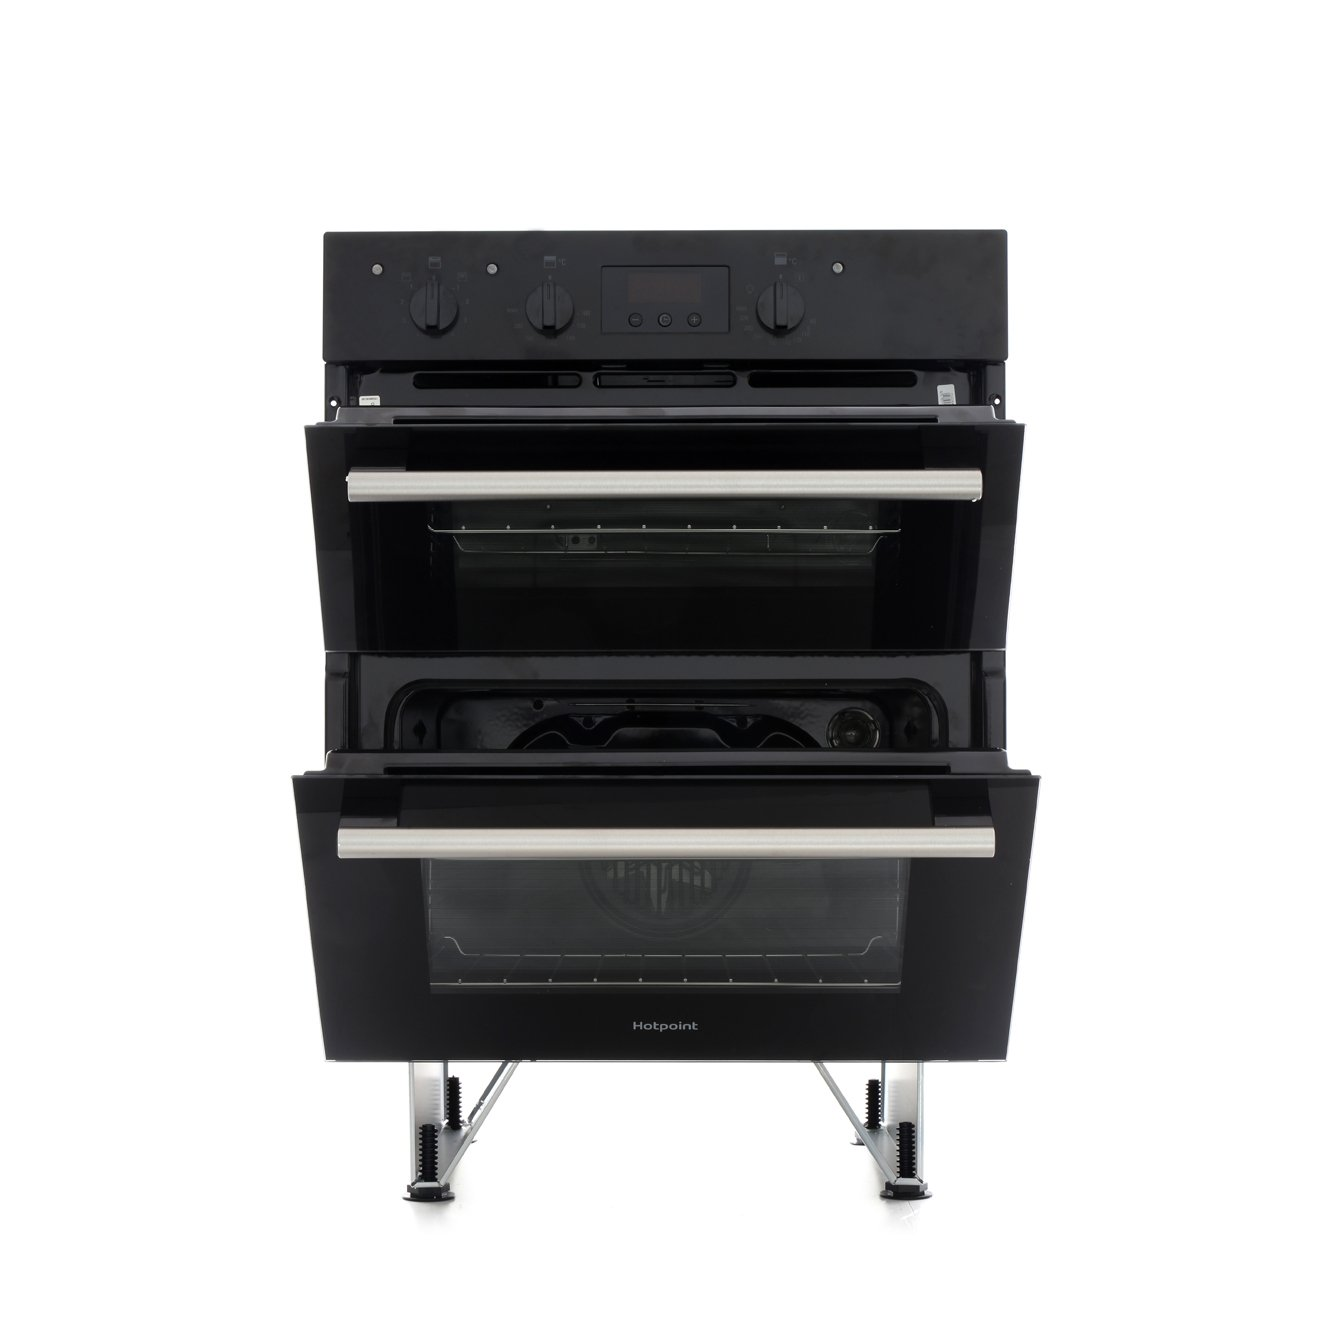 Hotpoint DU2540BL Double Built Under Electric Oven - Inox - Buy ...